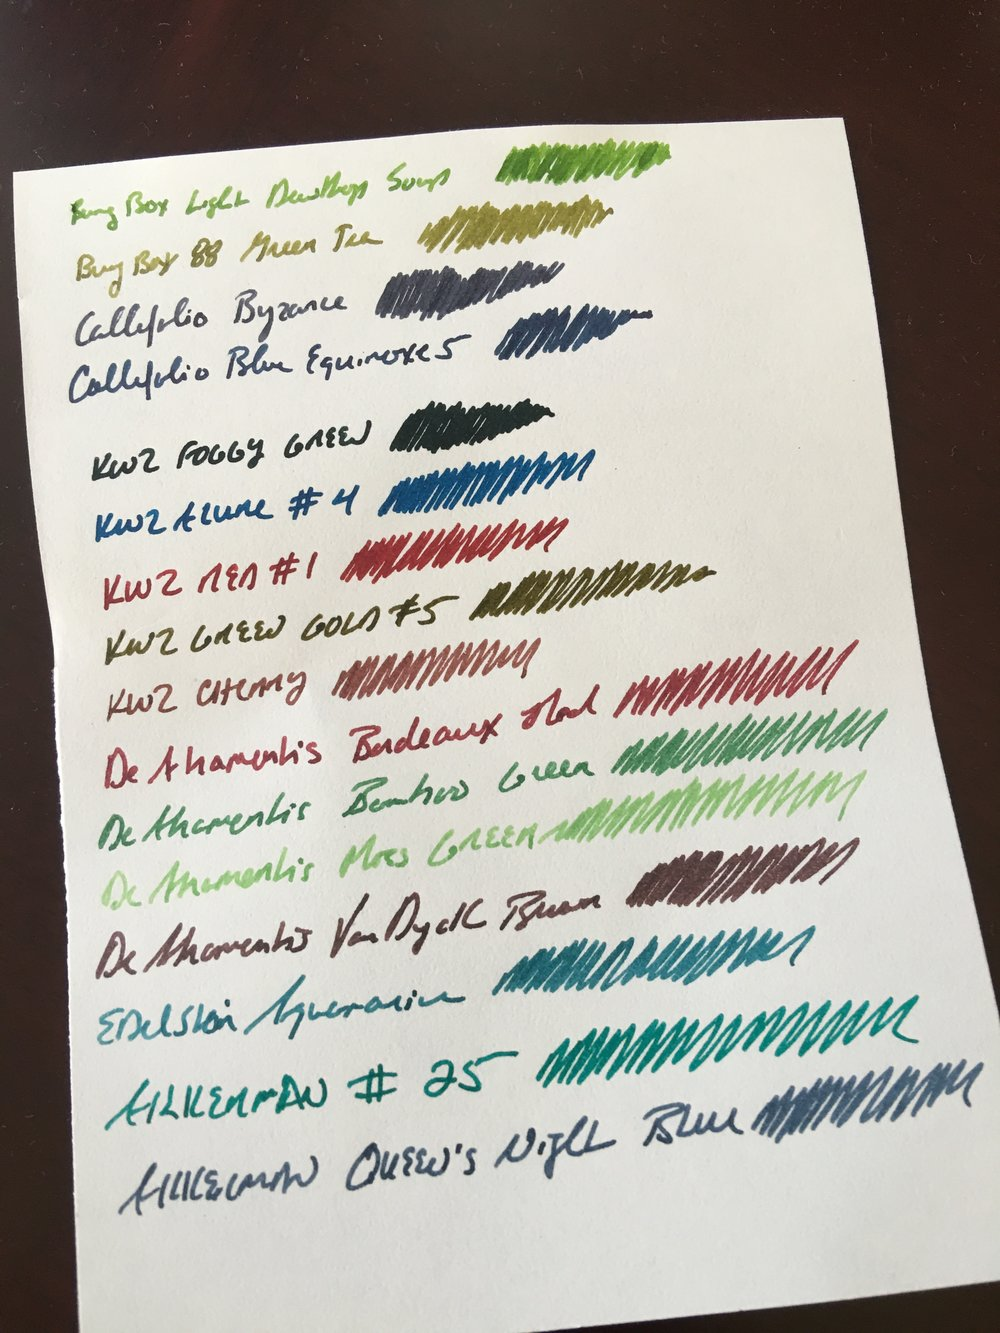 My ink sample sheet from the DC Pen Show. I was trying a lot of lighter green inks, but none of these popped like the Akkerman #28.